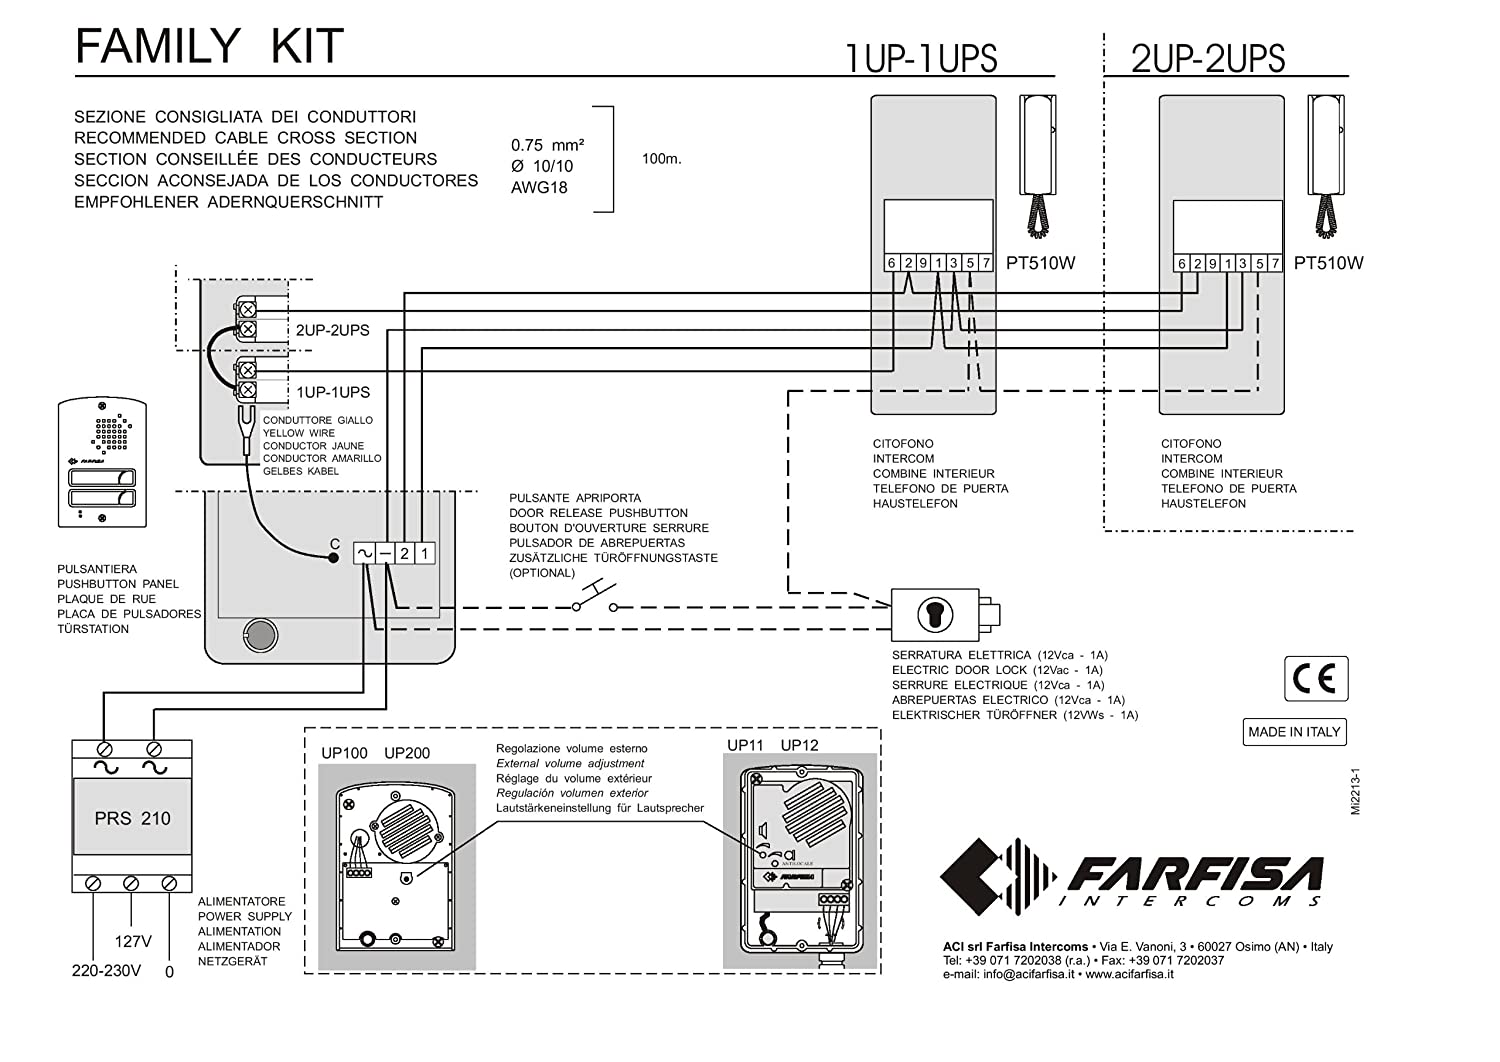 81VvKBixesL._SL1500_ amazon com o9n farfisa 1ups door entry audio intercom 2 way farfisa door entry wiring diagrams at creativeand.co